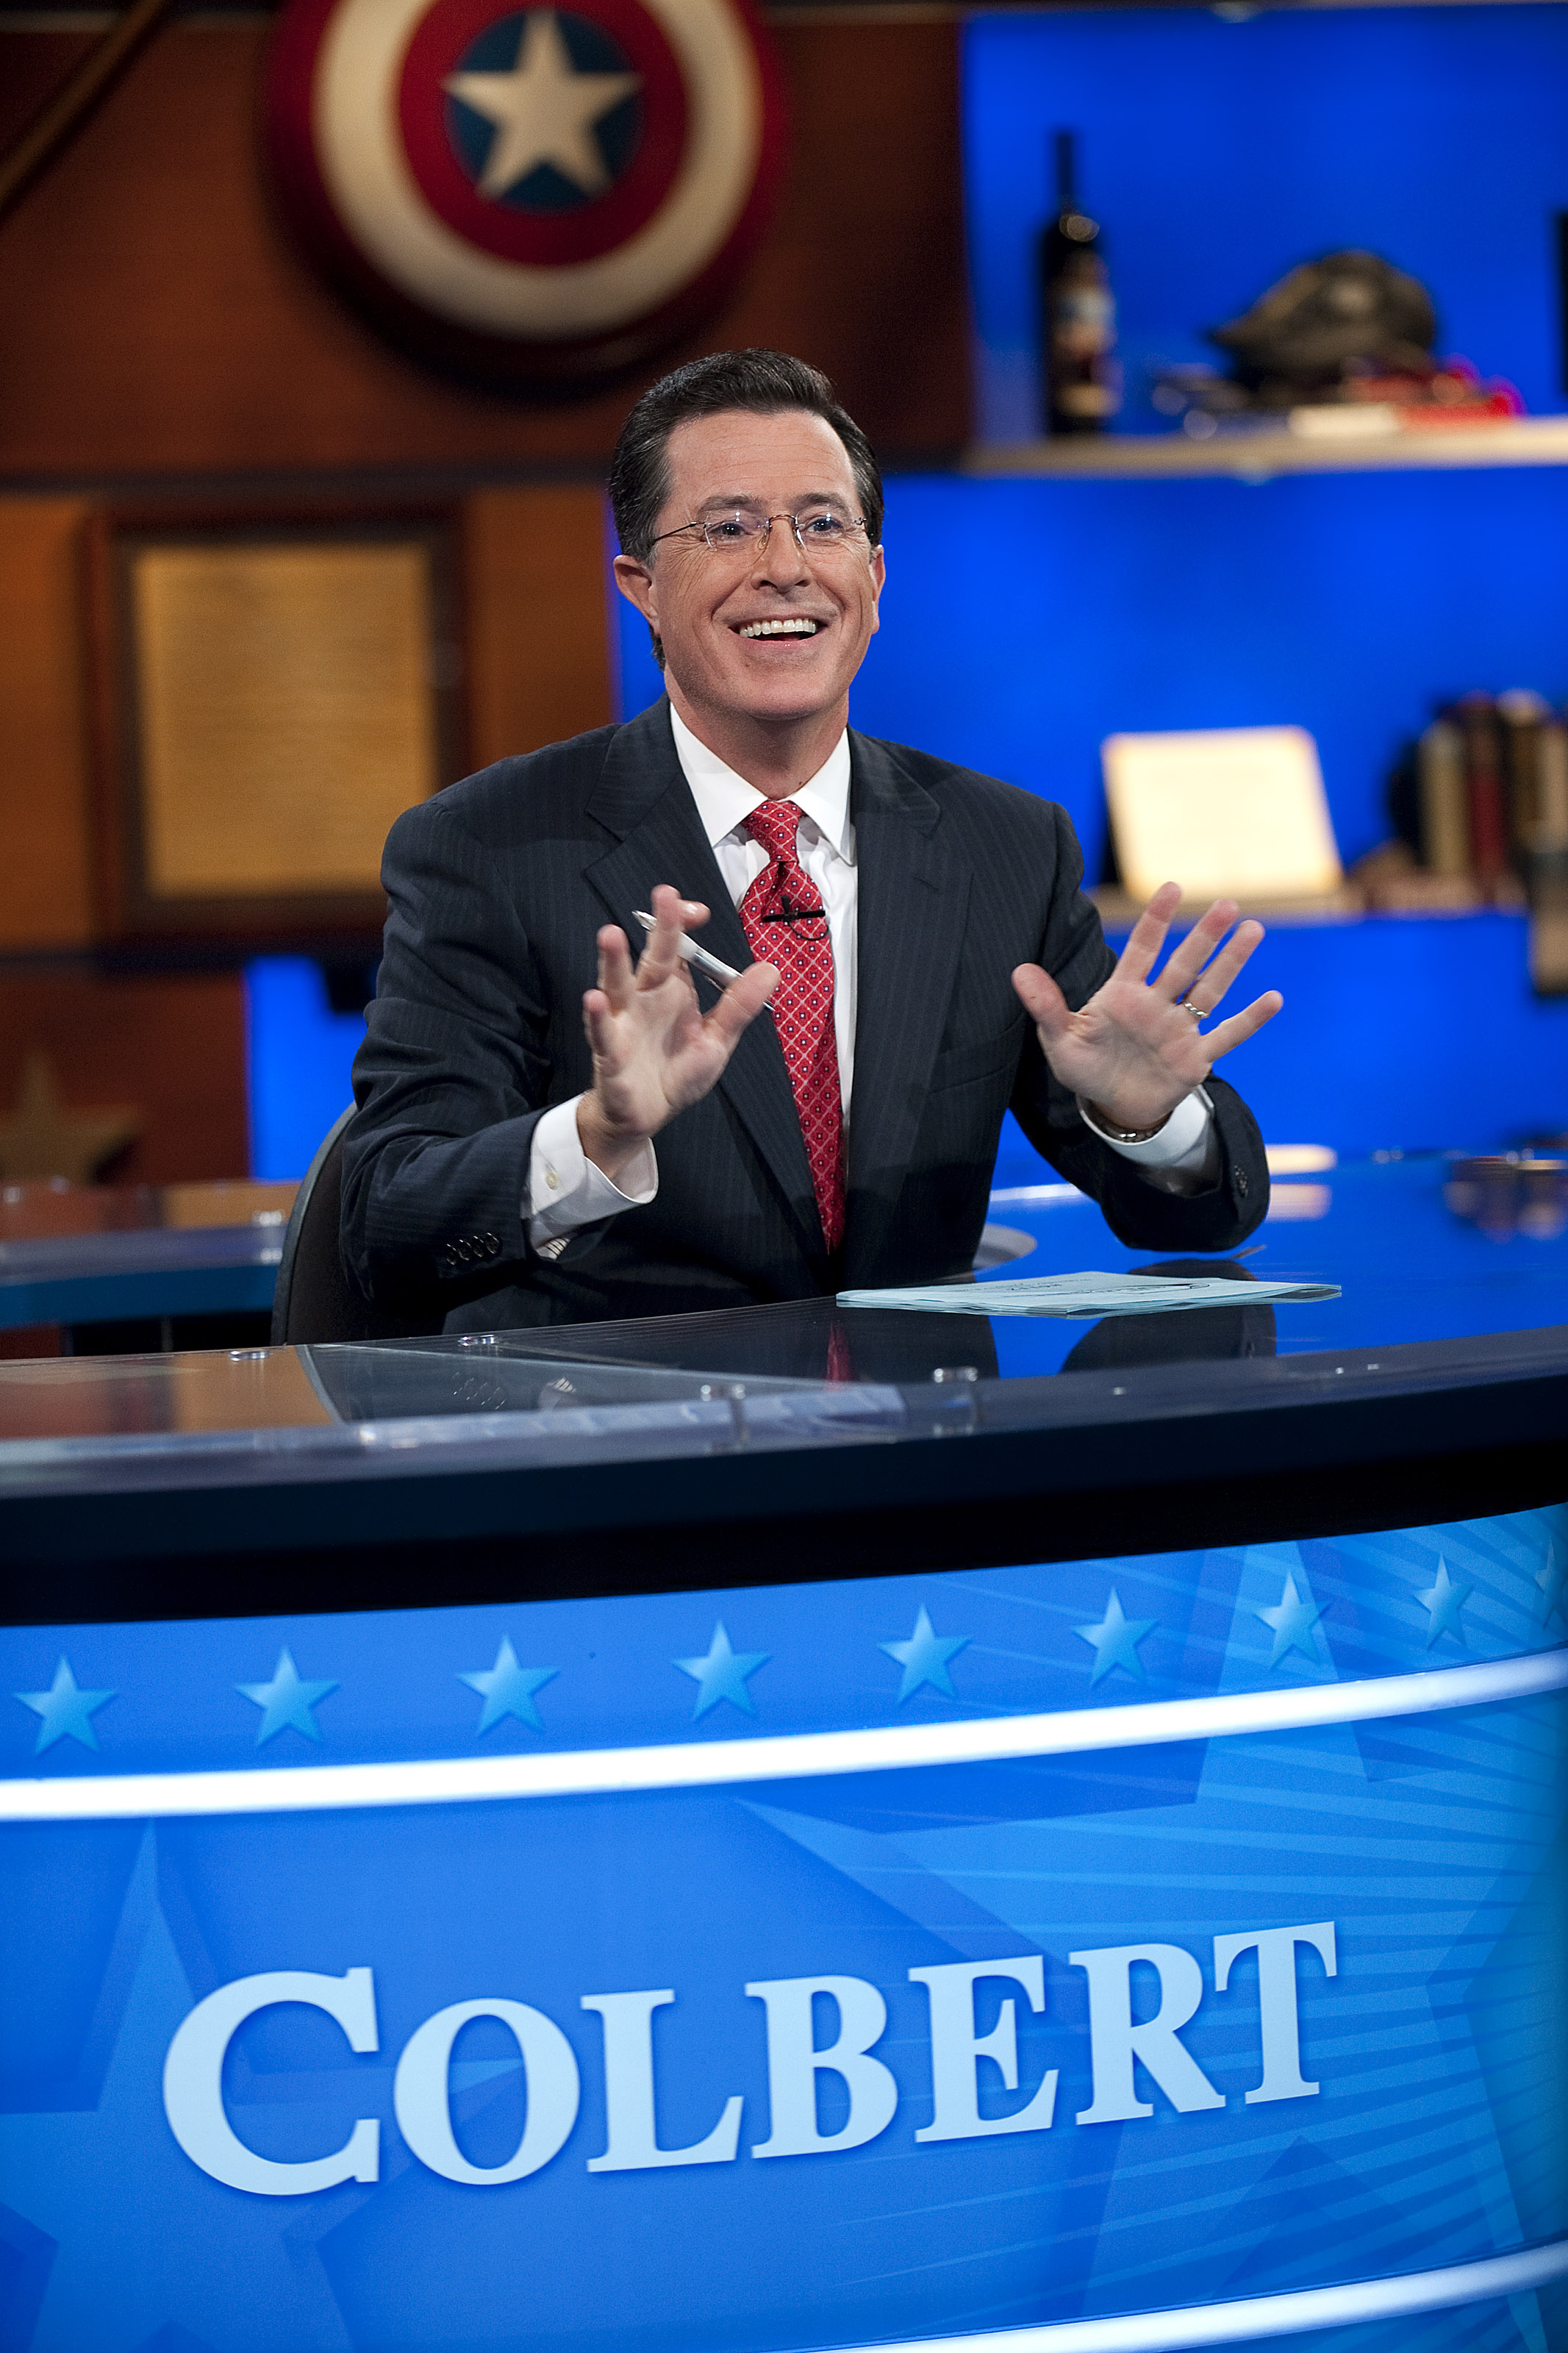 Stephen Colbert during the  Been There: Won That: The Returnification of the American-Do Troopscapeon  special of The Colbert Report on Sept. 8, 2010 in New York City.